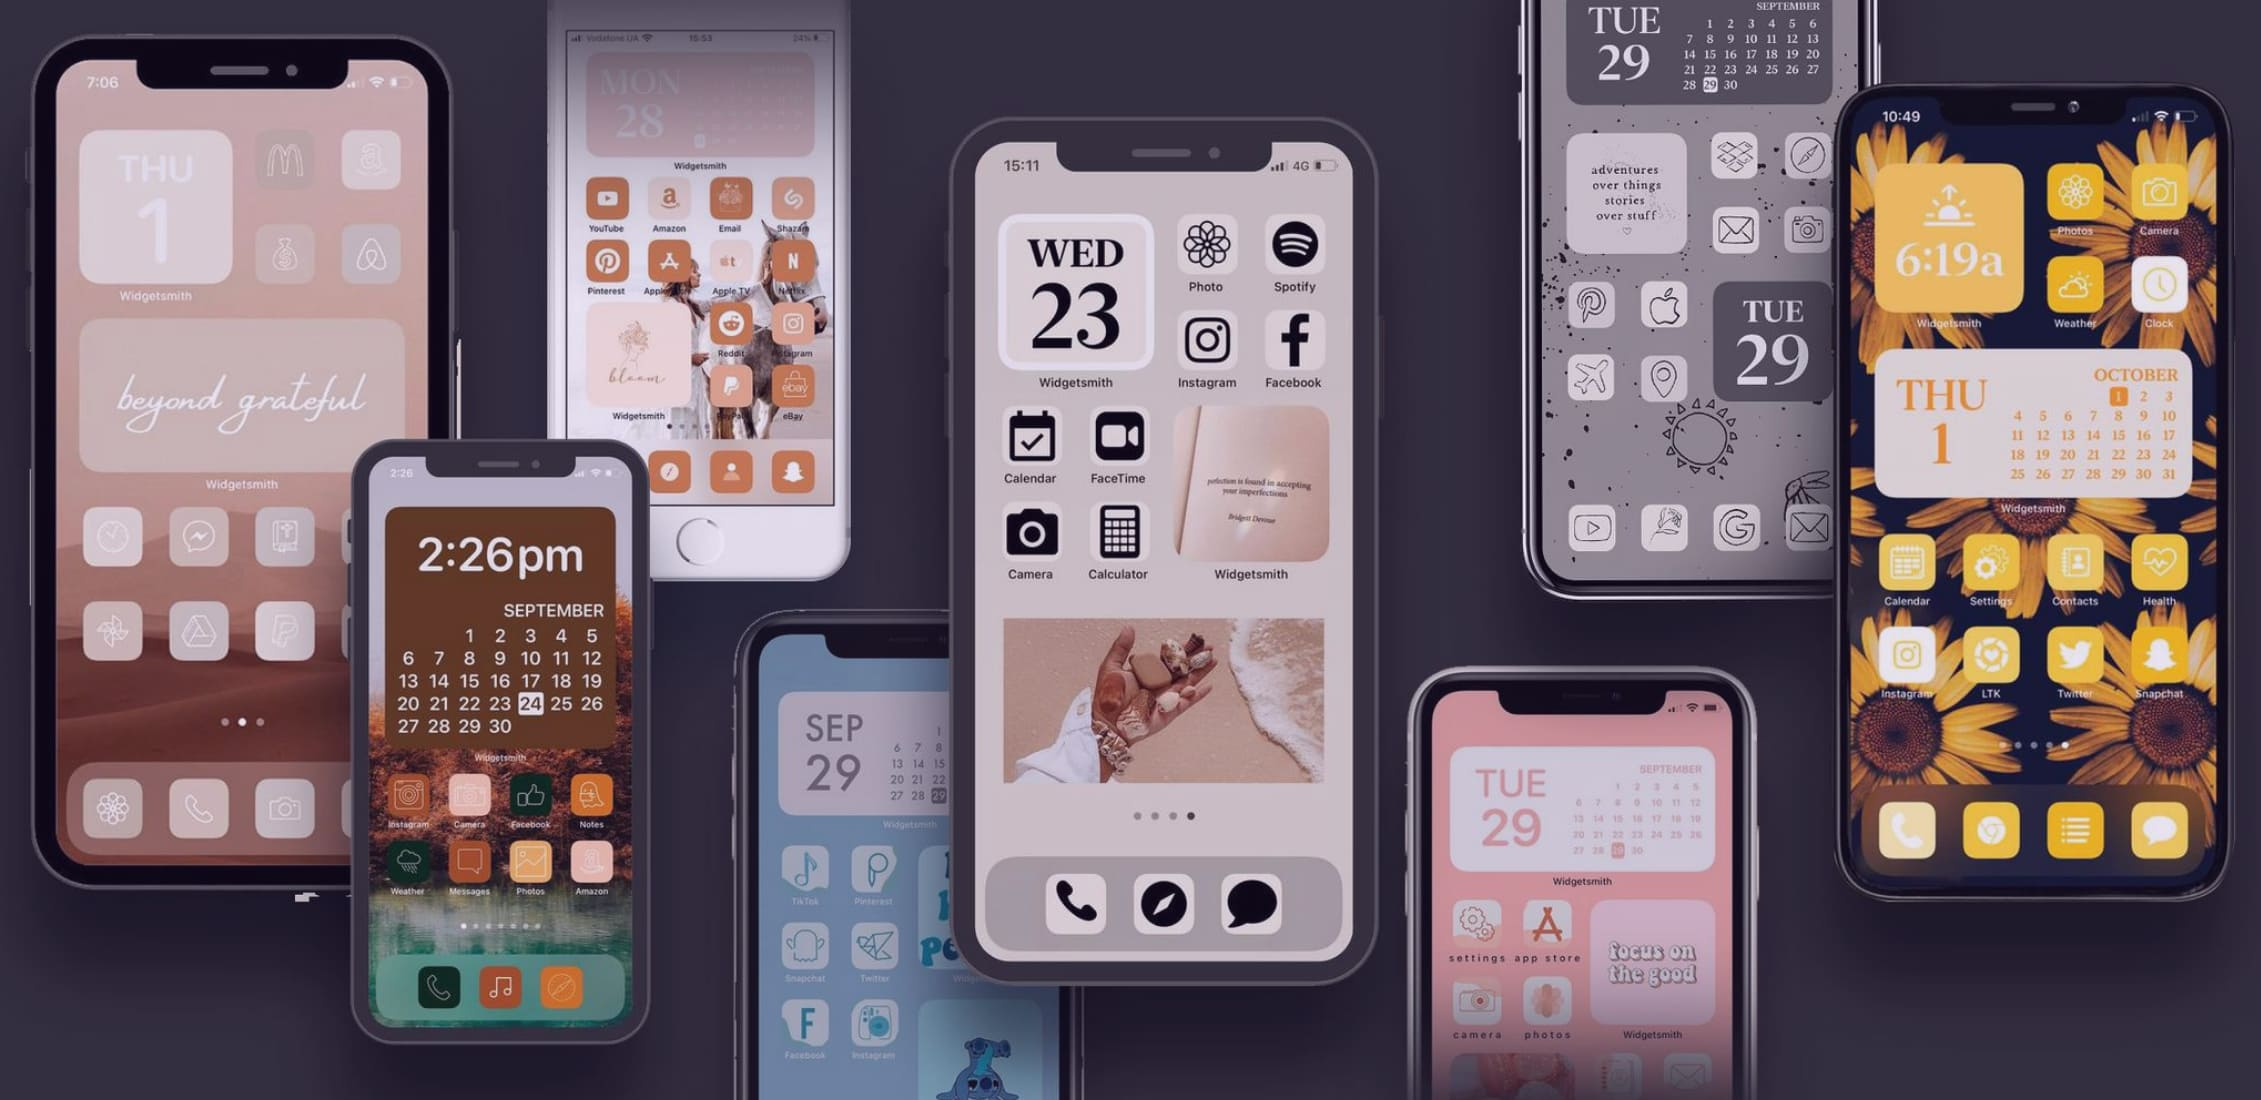 Examples of custom icons for iPhone applications.